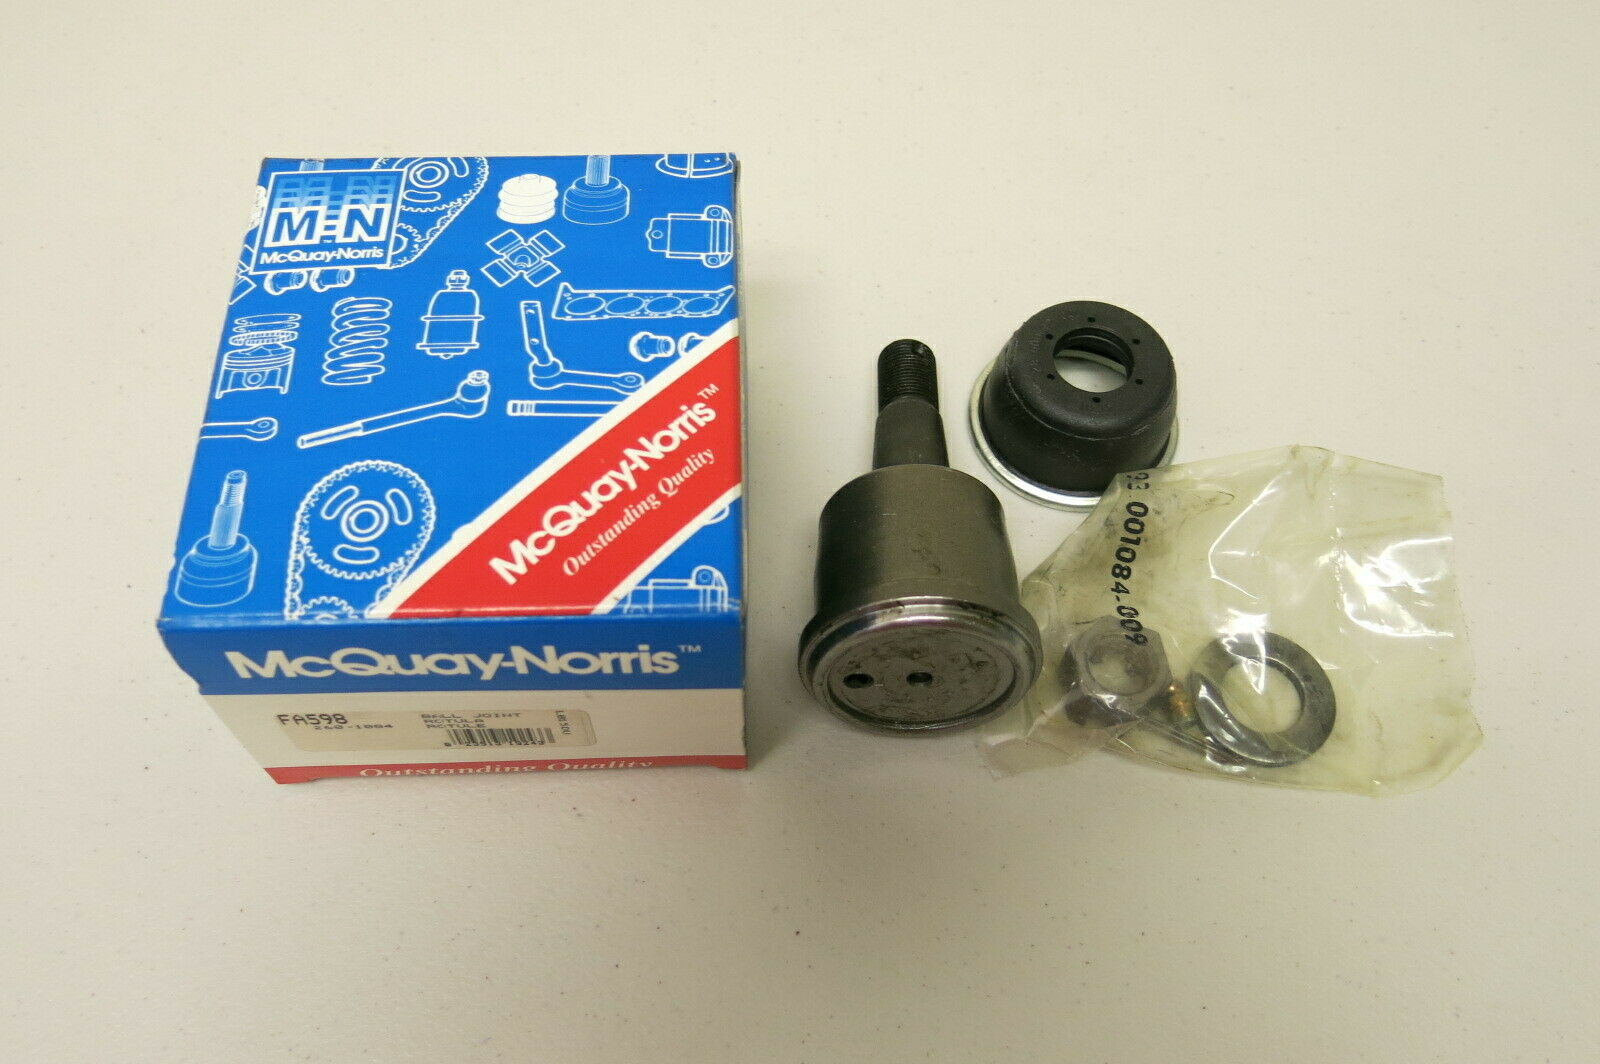 Suspension Ball Joint-McQuay Norris Front Lower McQuay-Norris FA598